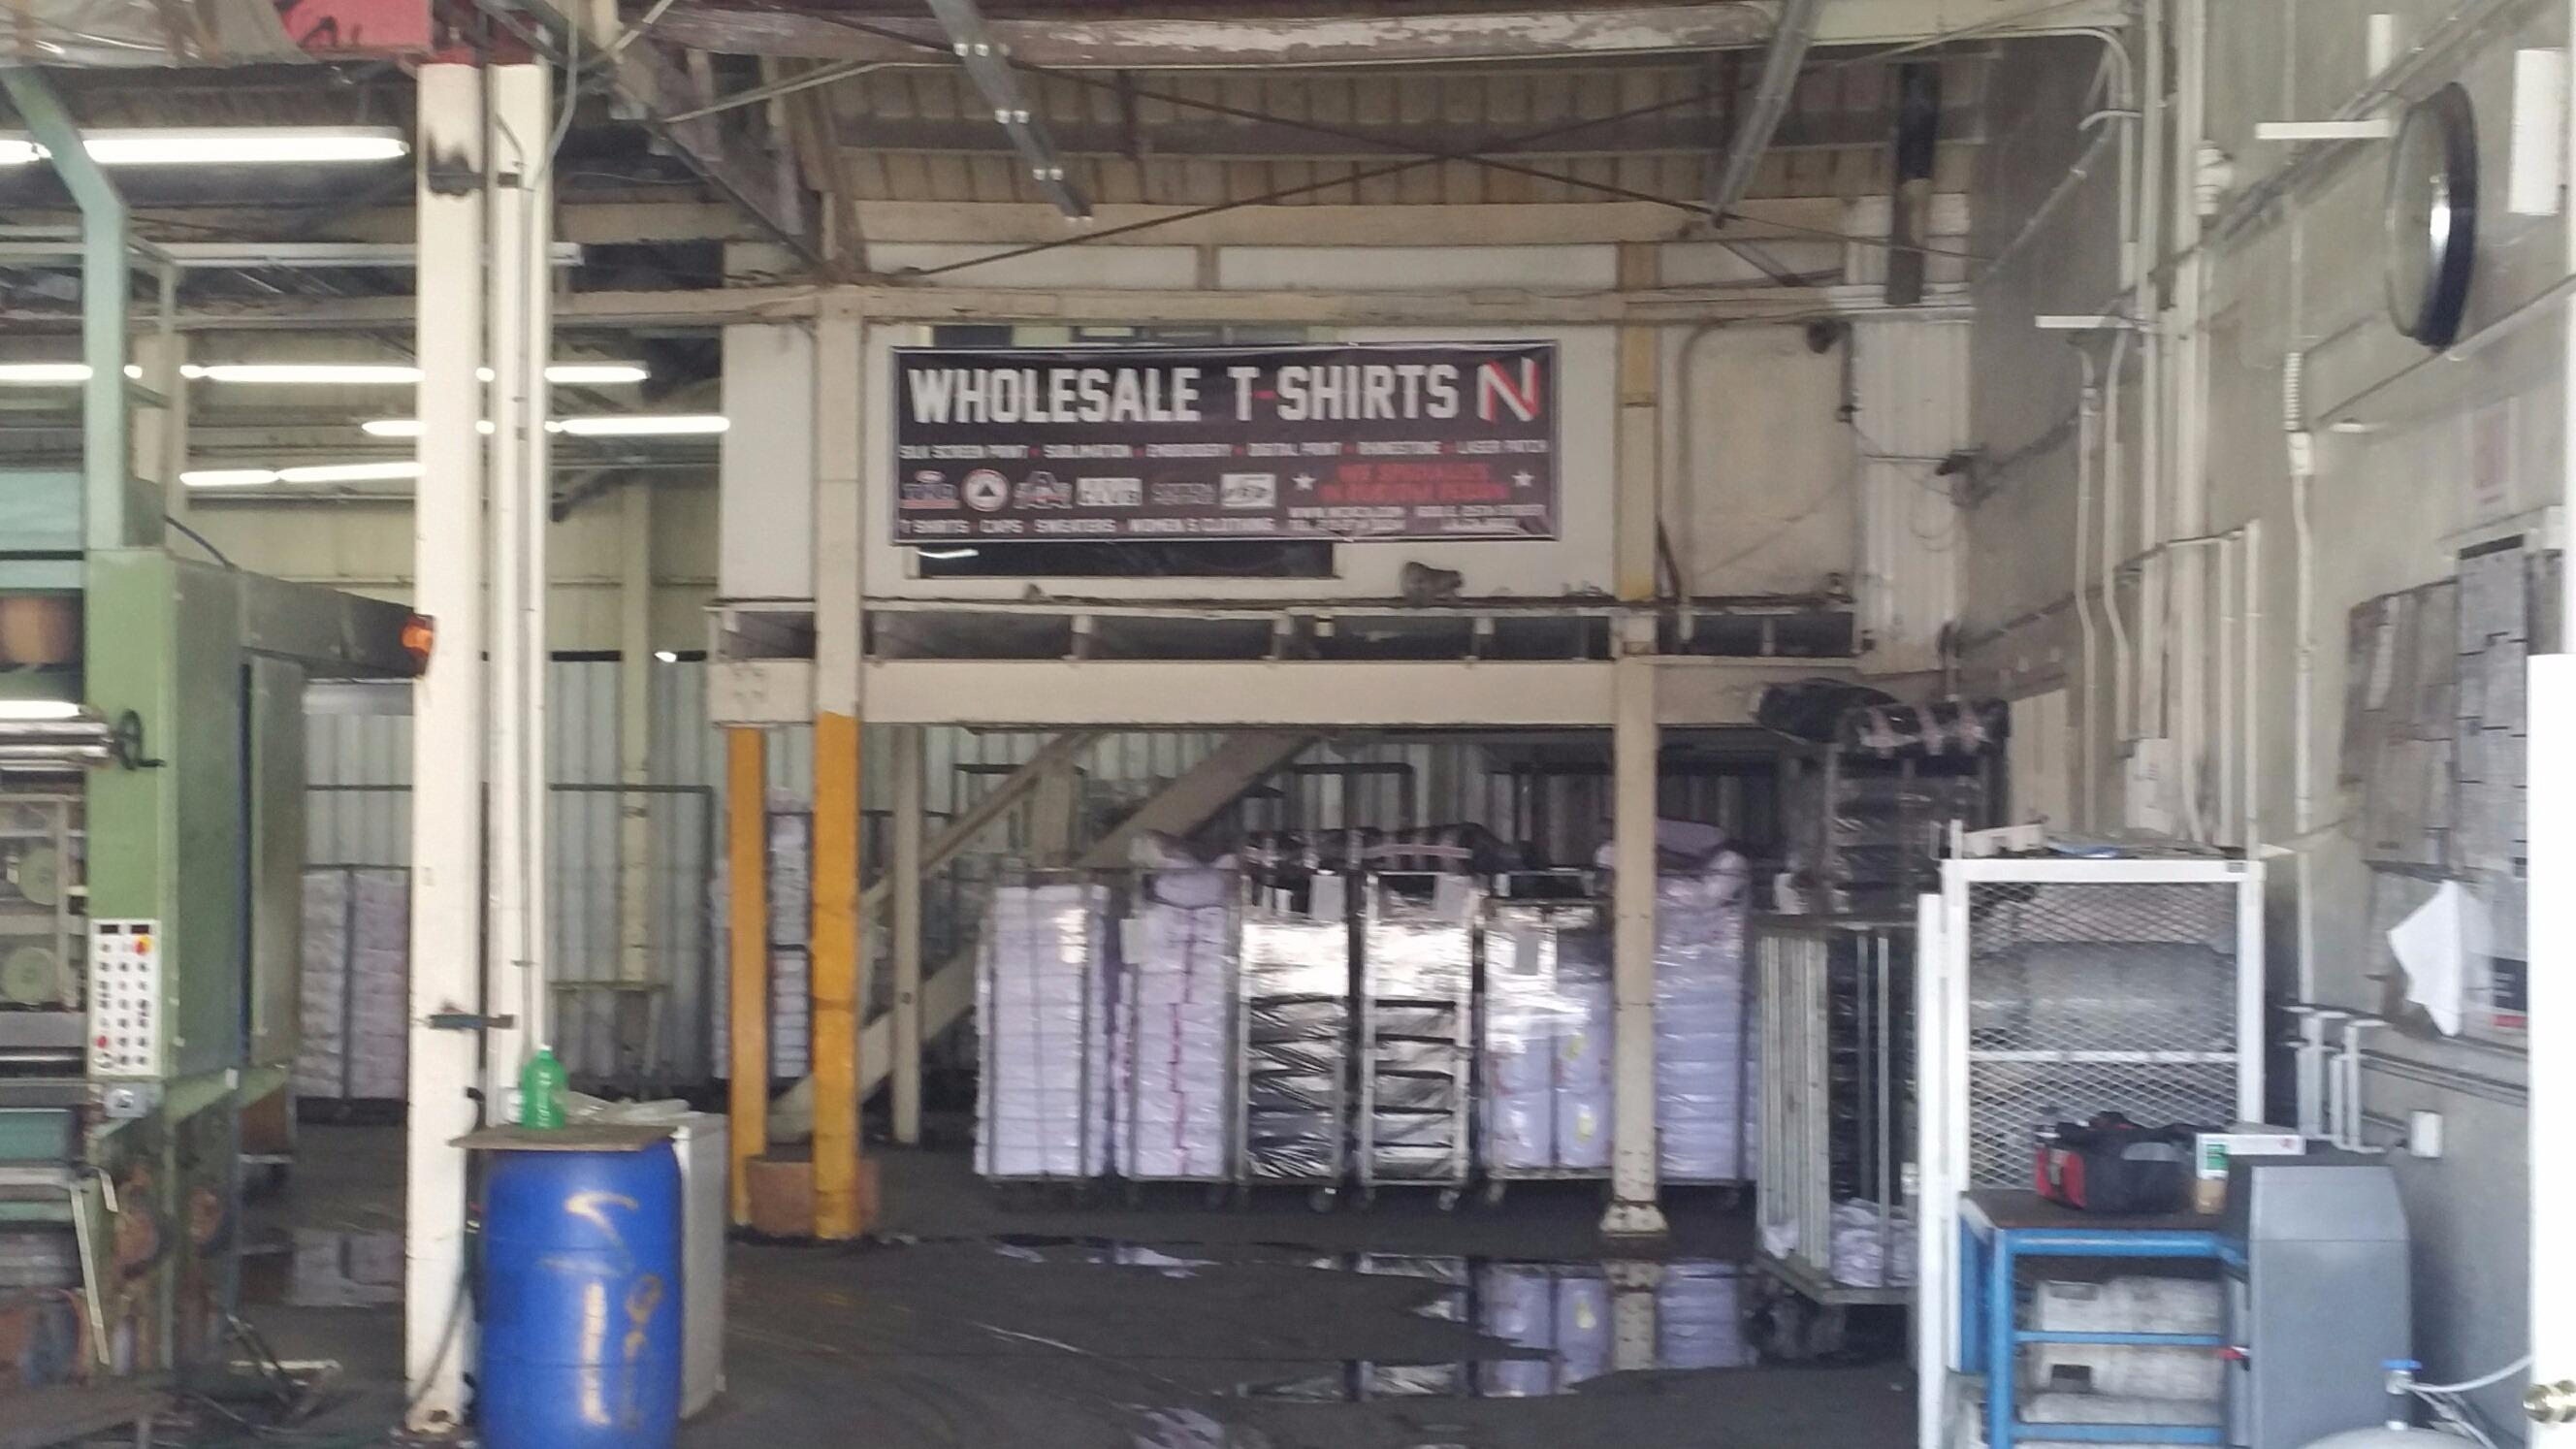 Wholesale t shirts n los angeles ca business directory for Bulk t shirts los angeles